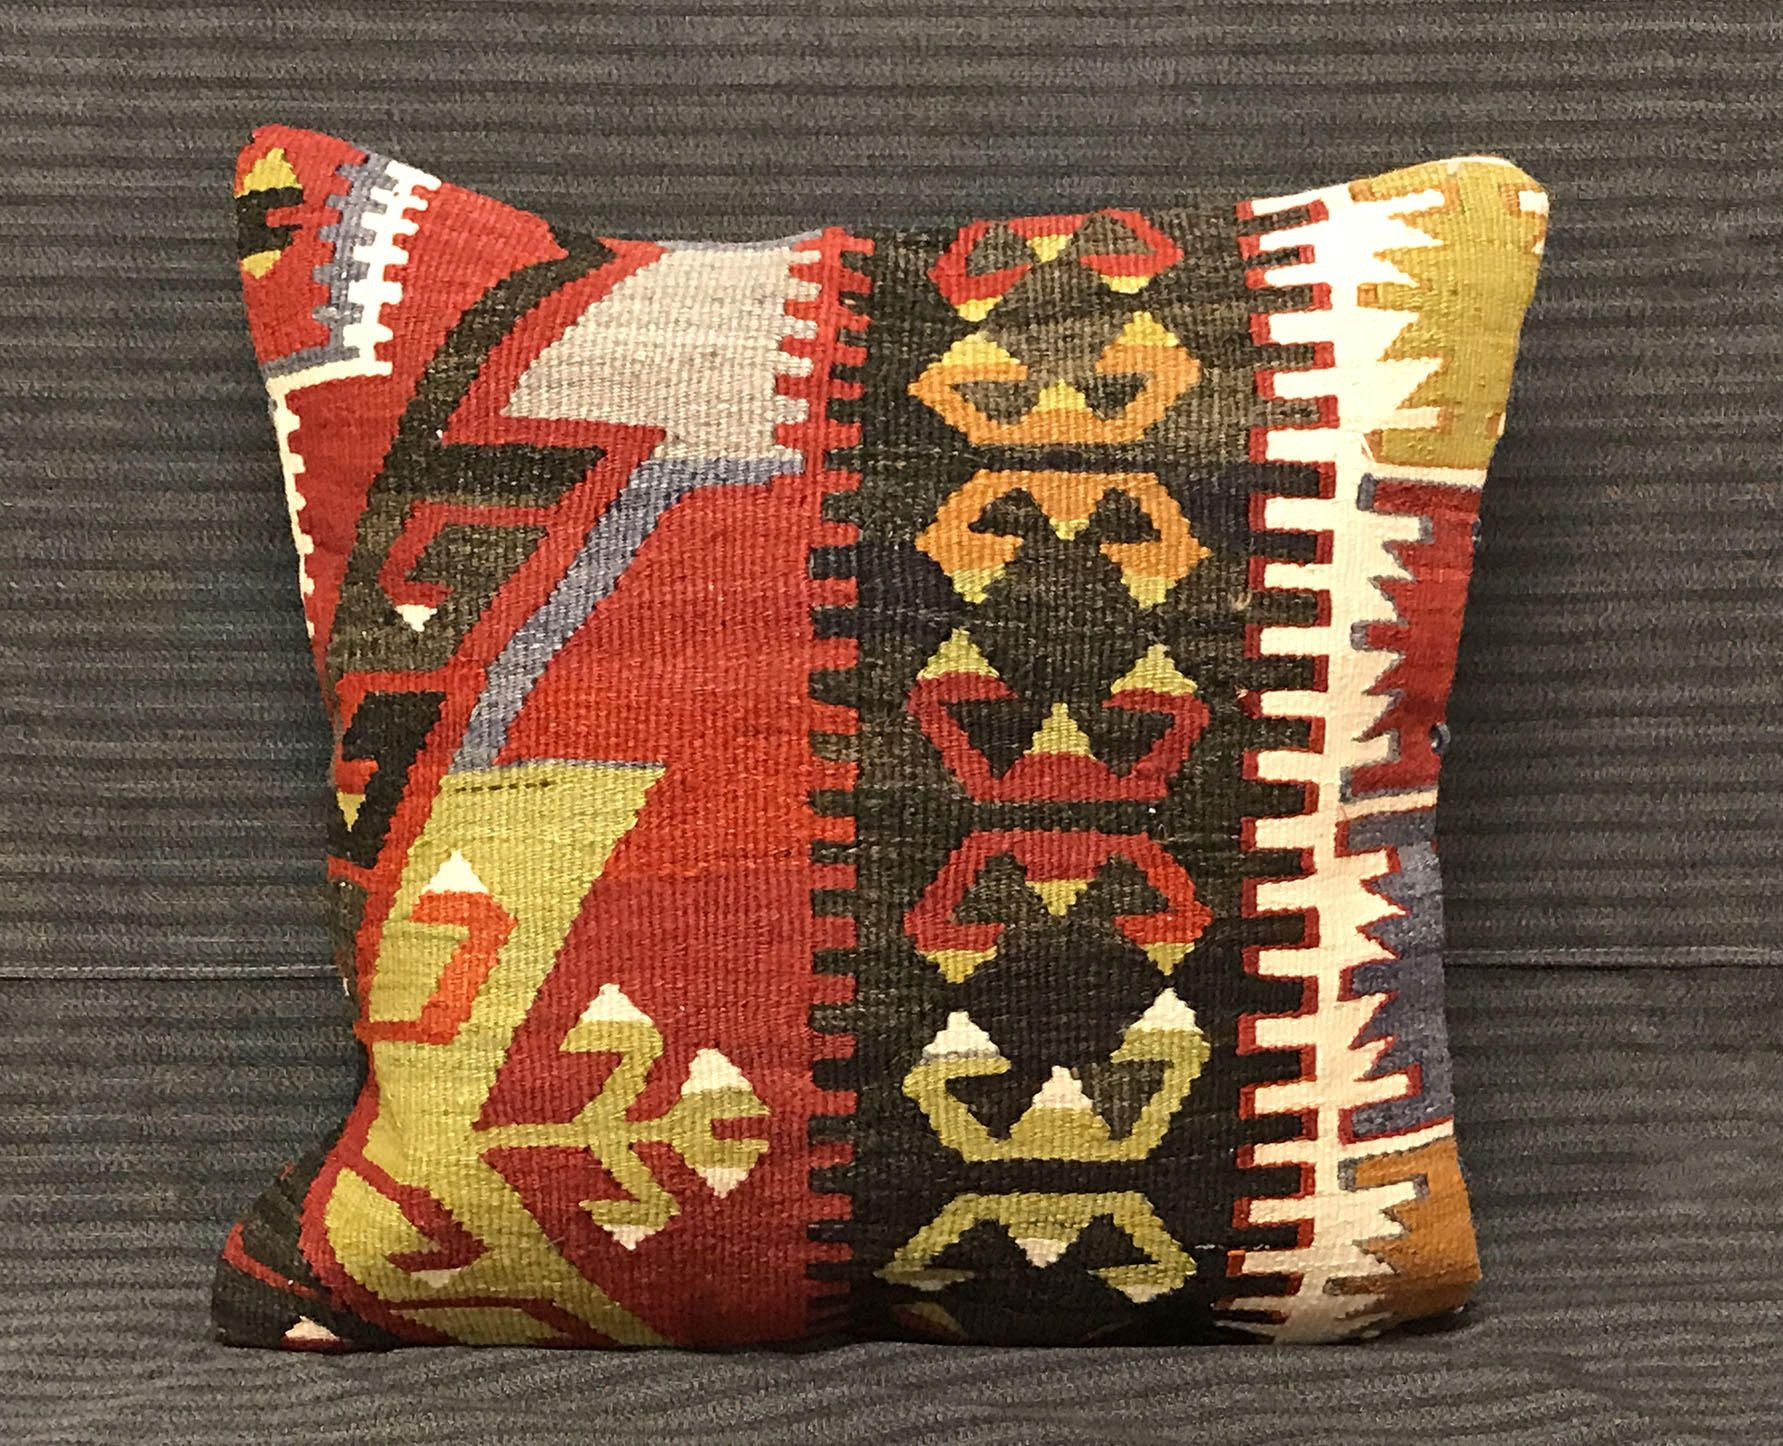 Kilim Pillow Handmade Pillow Cover Traditional Pillow Turkish Kilim Pillow Vintage Pillow Boho Pillows Rug Pillows Cover Turkish Bedding by TurkishBohoChic on Etsy